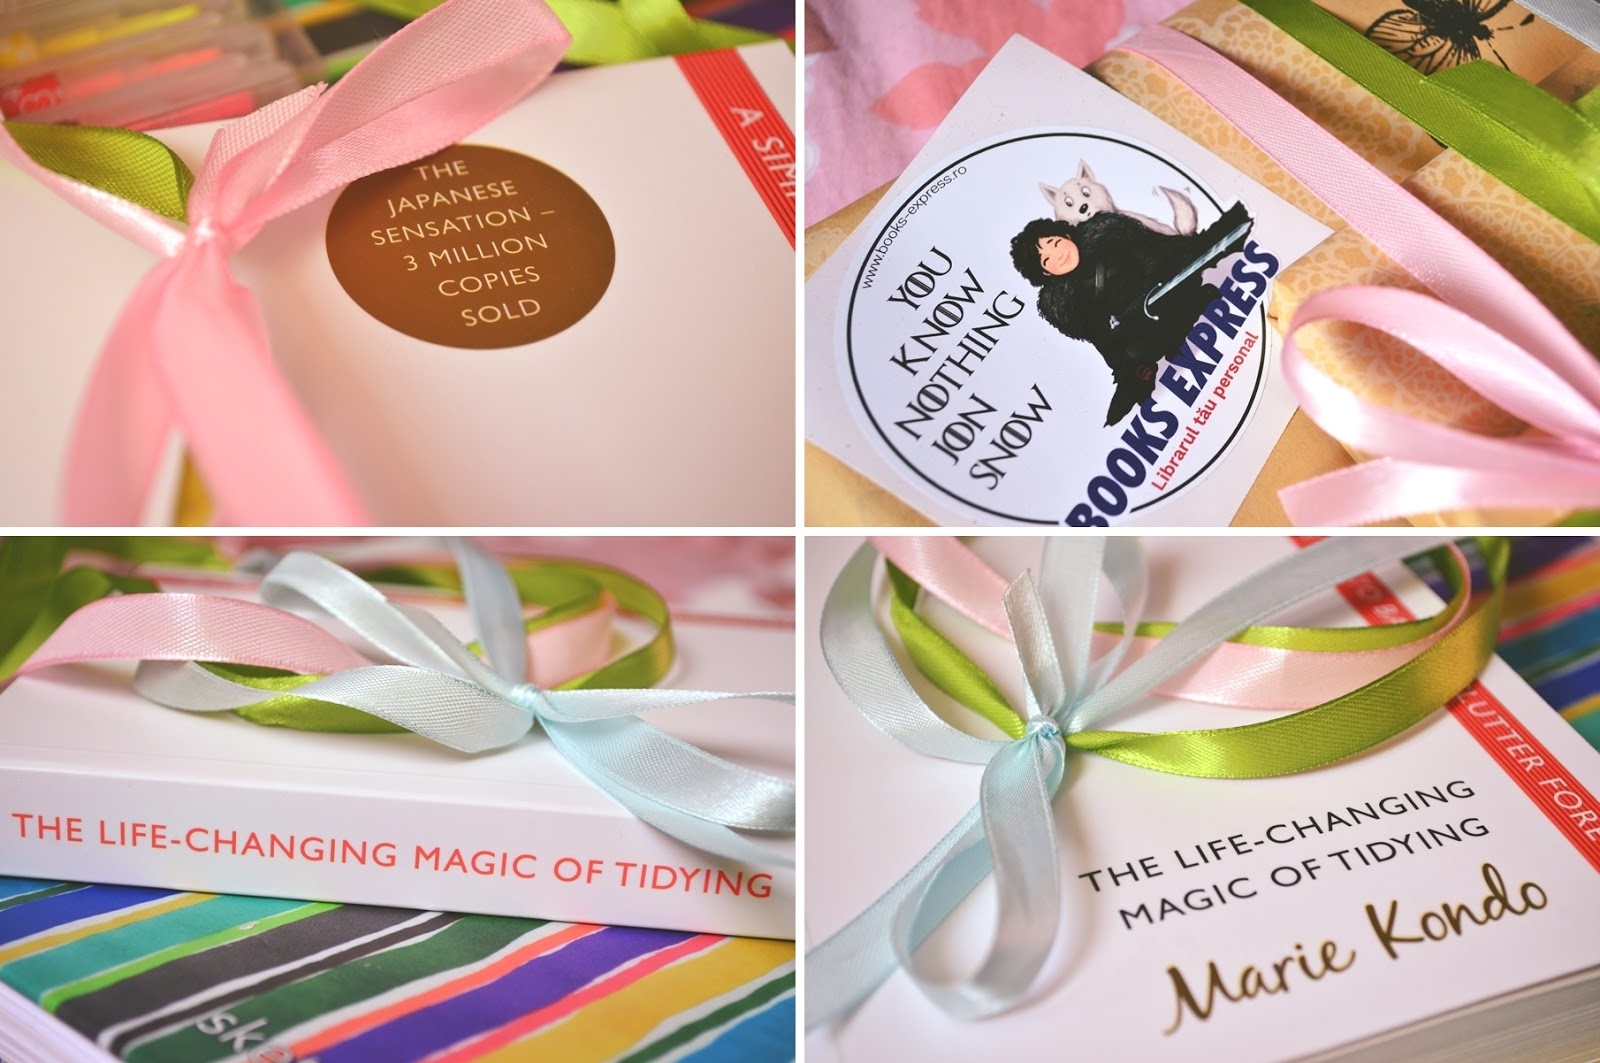 carte book the life changing magic of tidying marie kondo